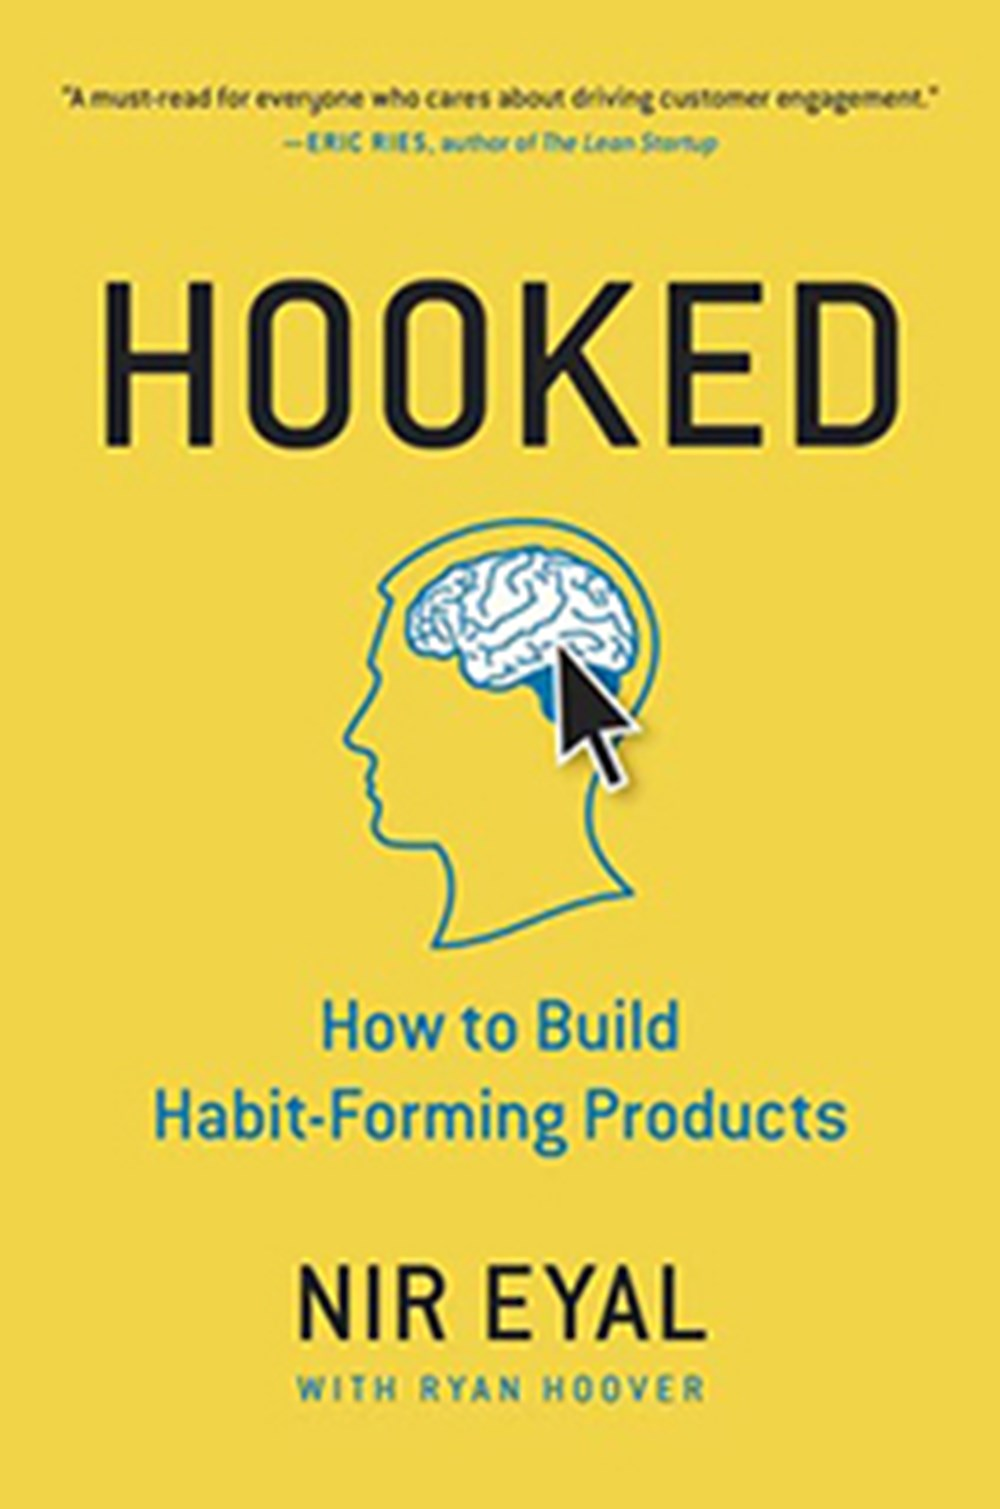 Hooked How to Build Habit-Forming Products